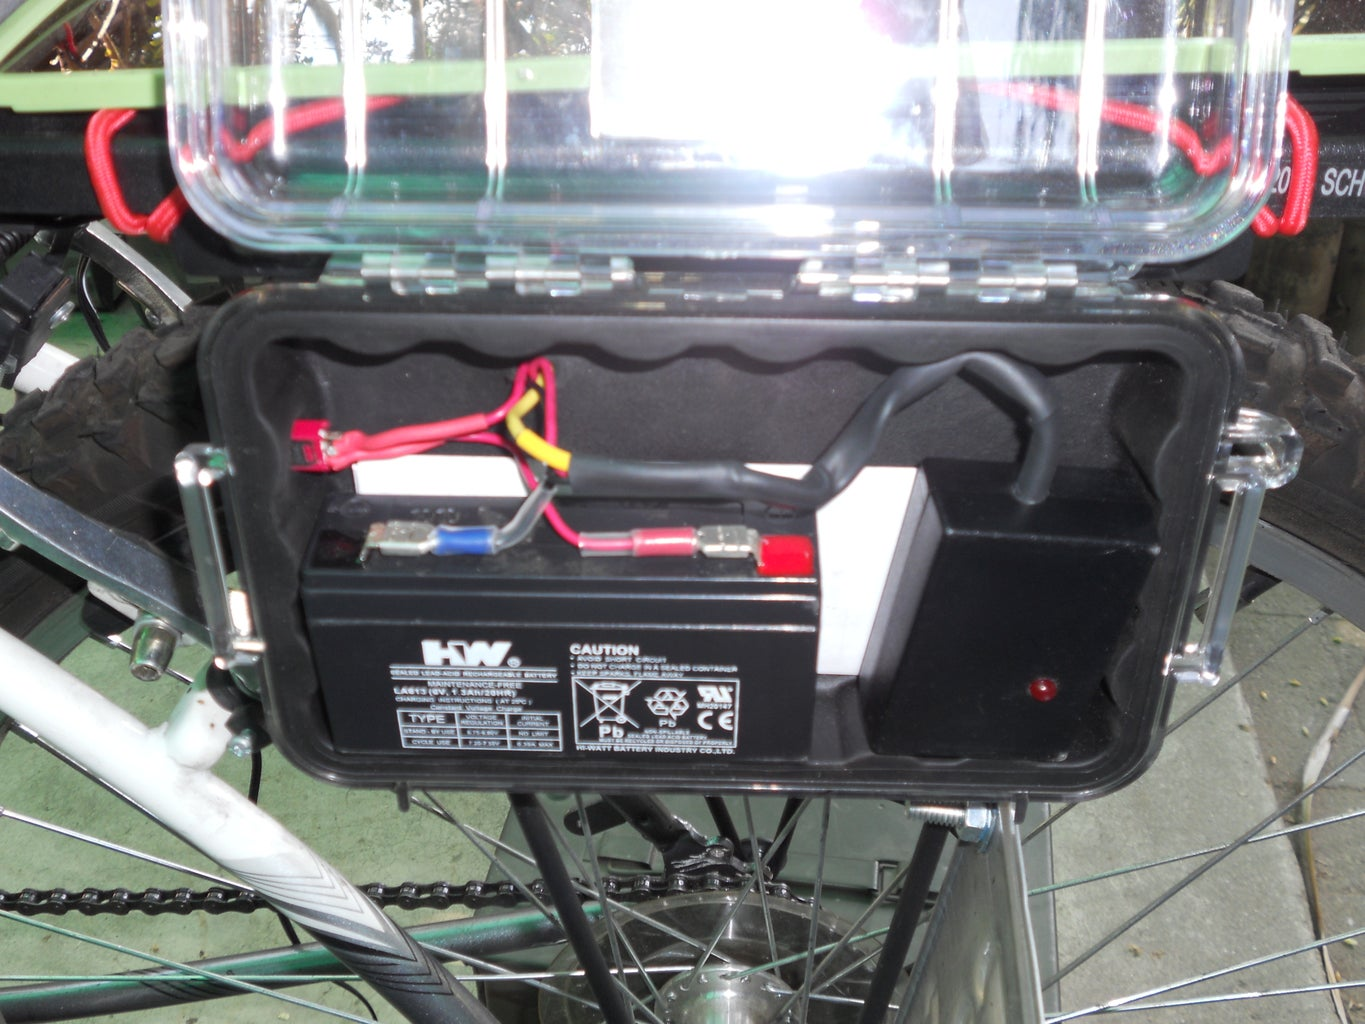 Solar Charged LED Running Light With Flashing Brake Light for Bicycles